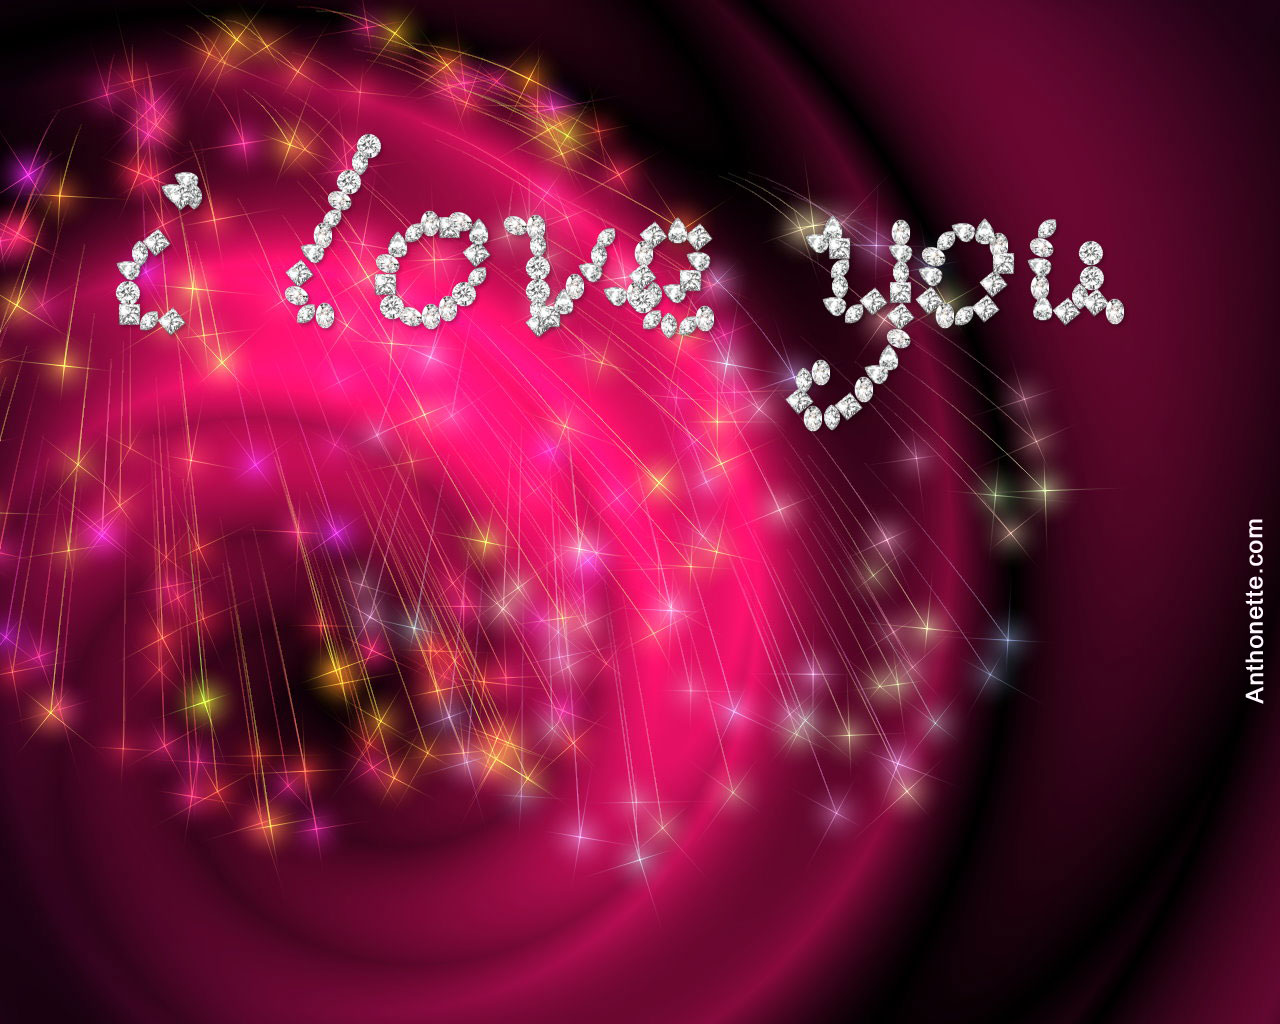 Love Wallpaper Mobile Size : love wallpapers for mobile phone -mobile wallpaper part 4 ...